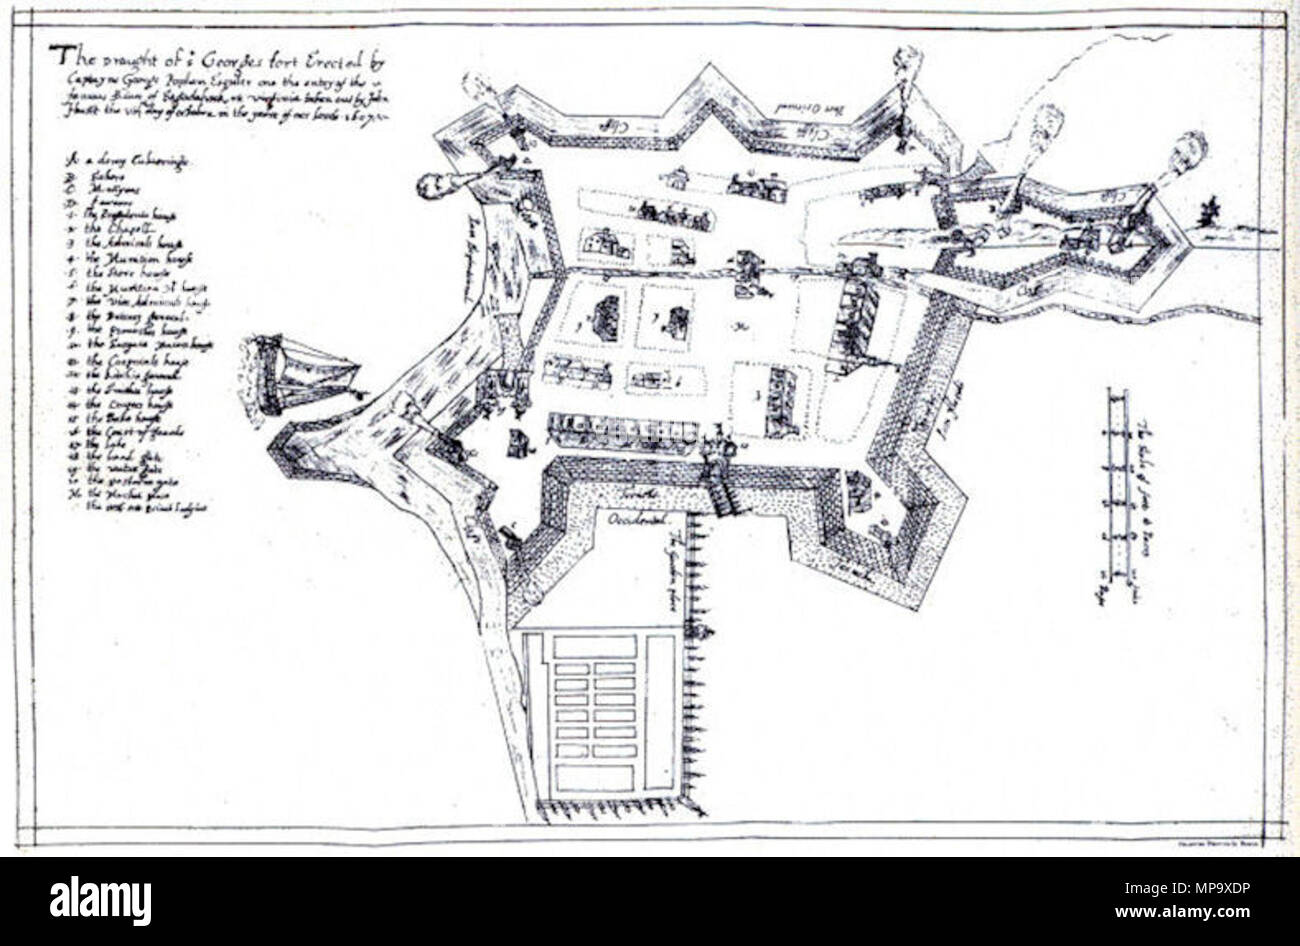 English: Map of the Popham Colony in Southern Maine as drawn by John on